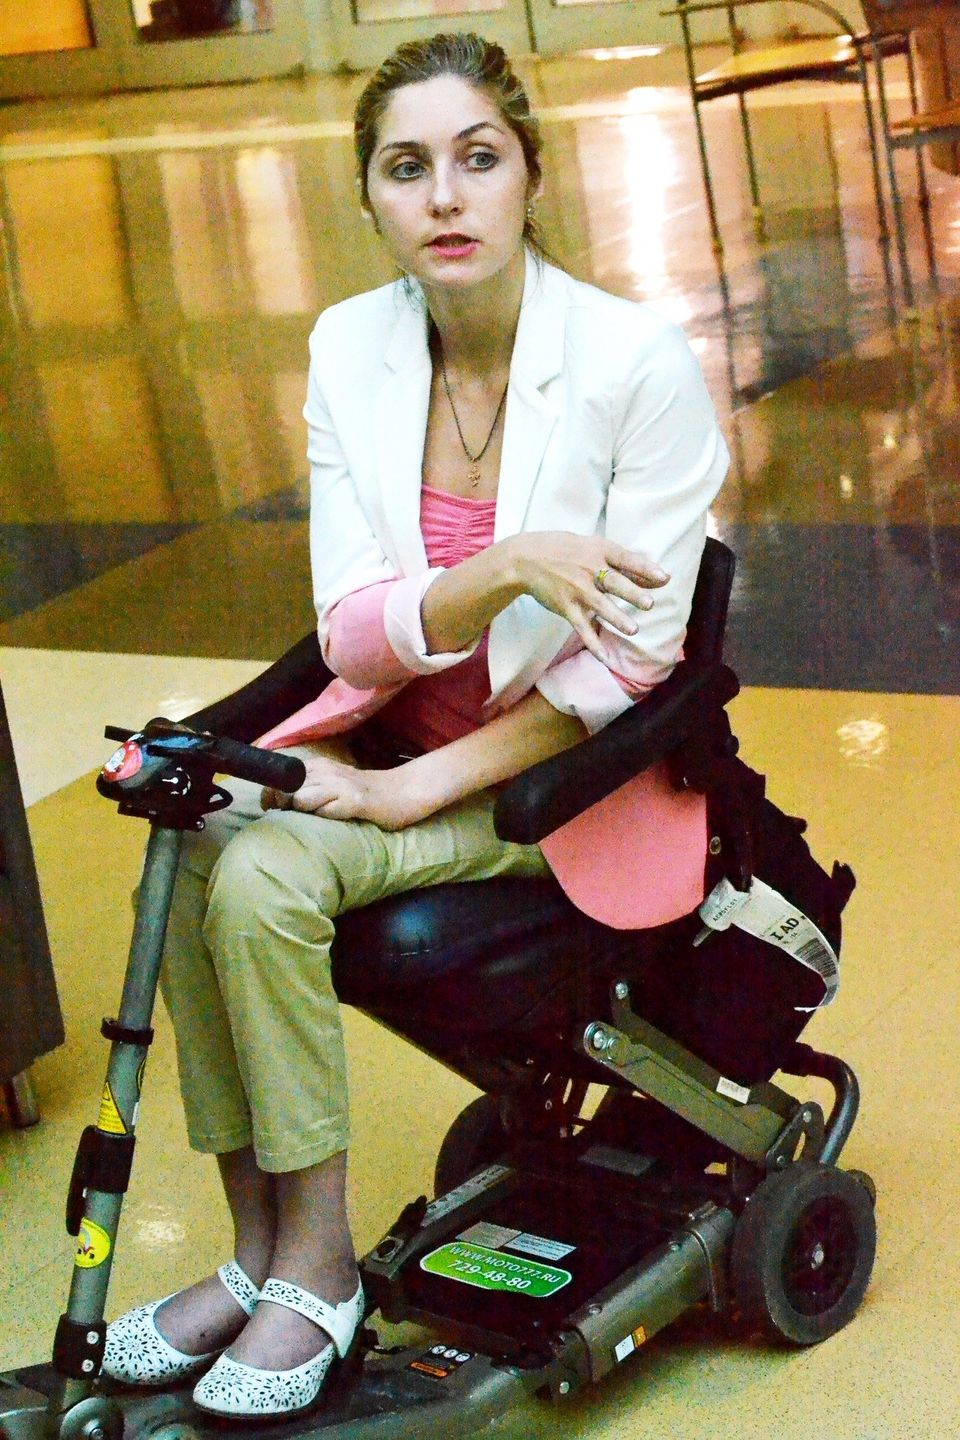 Disabled Russian visitor says of Lakeshore Foundation: 'I want to stay here'